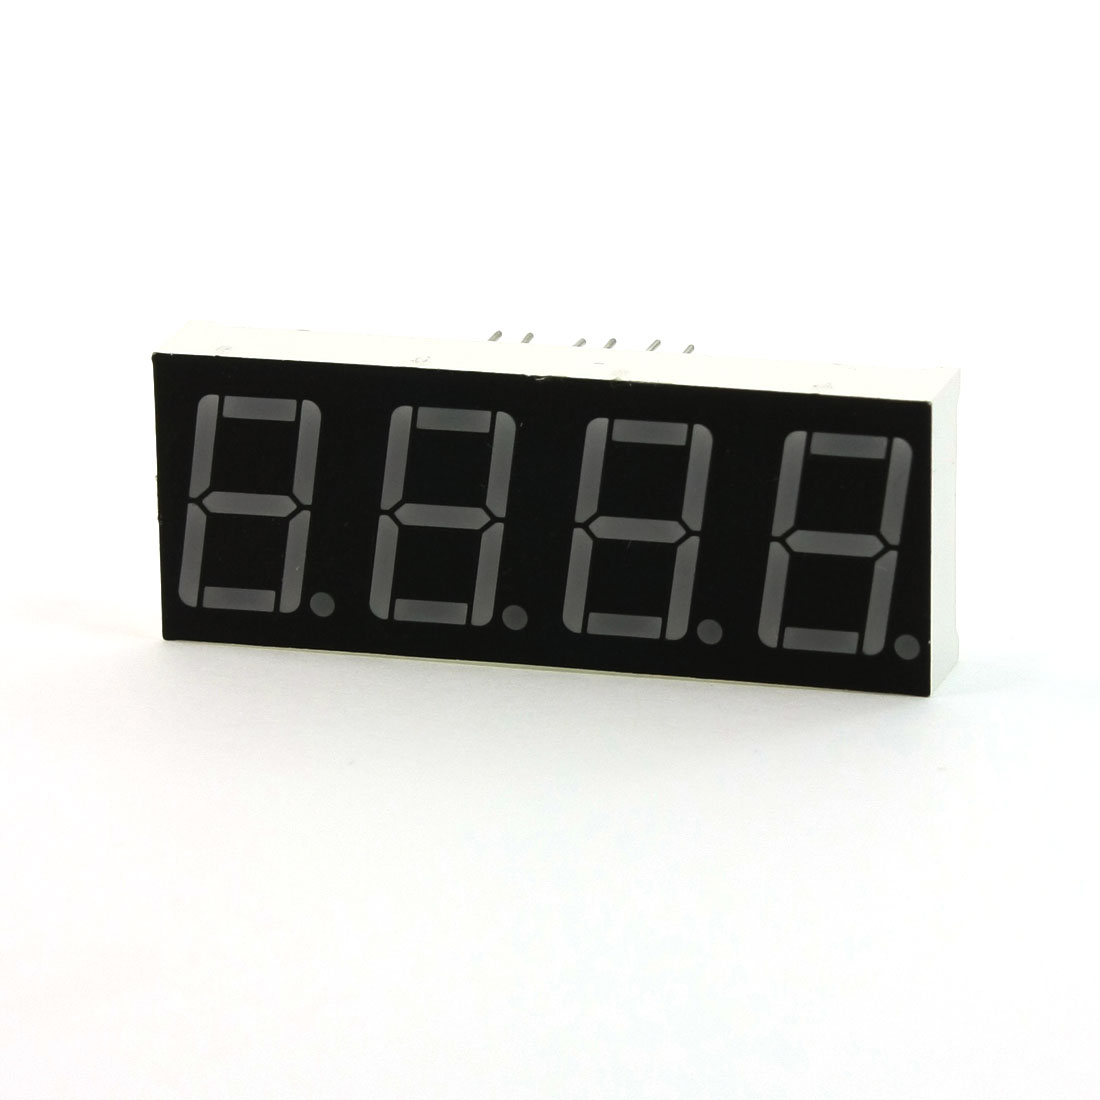 Compatible MCU 4 Digit 12 Pin Terminals Digital Display Module